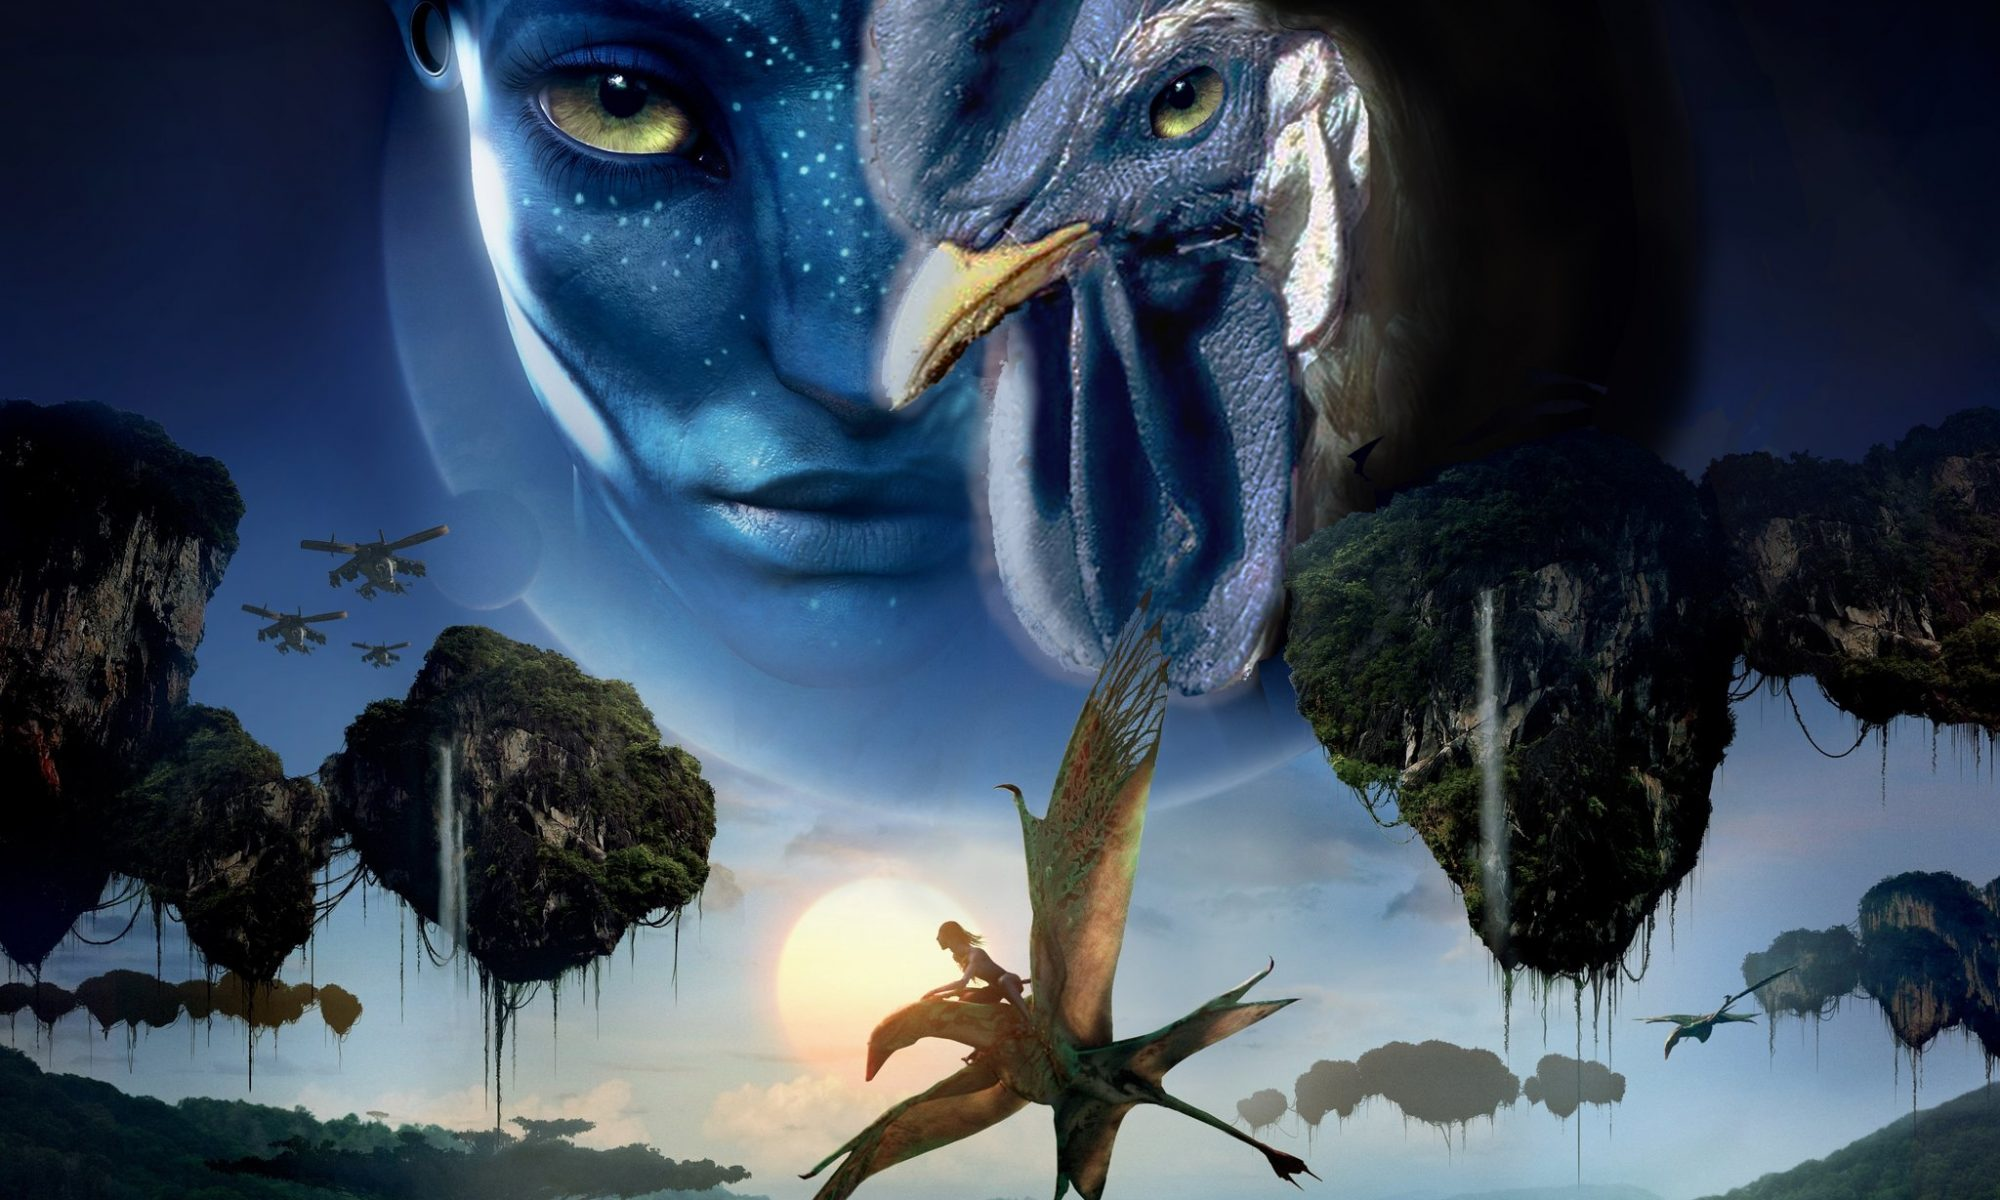 Spoof on the poster for Avatar the movie